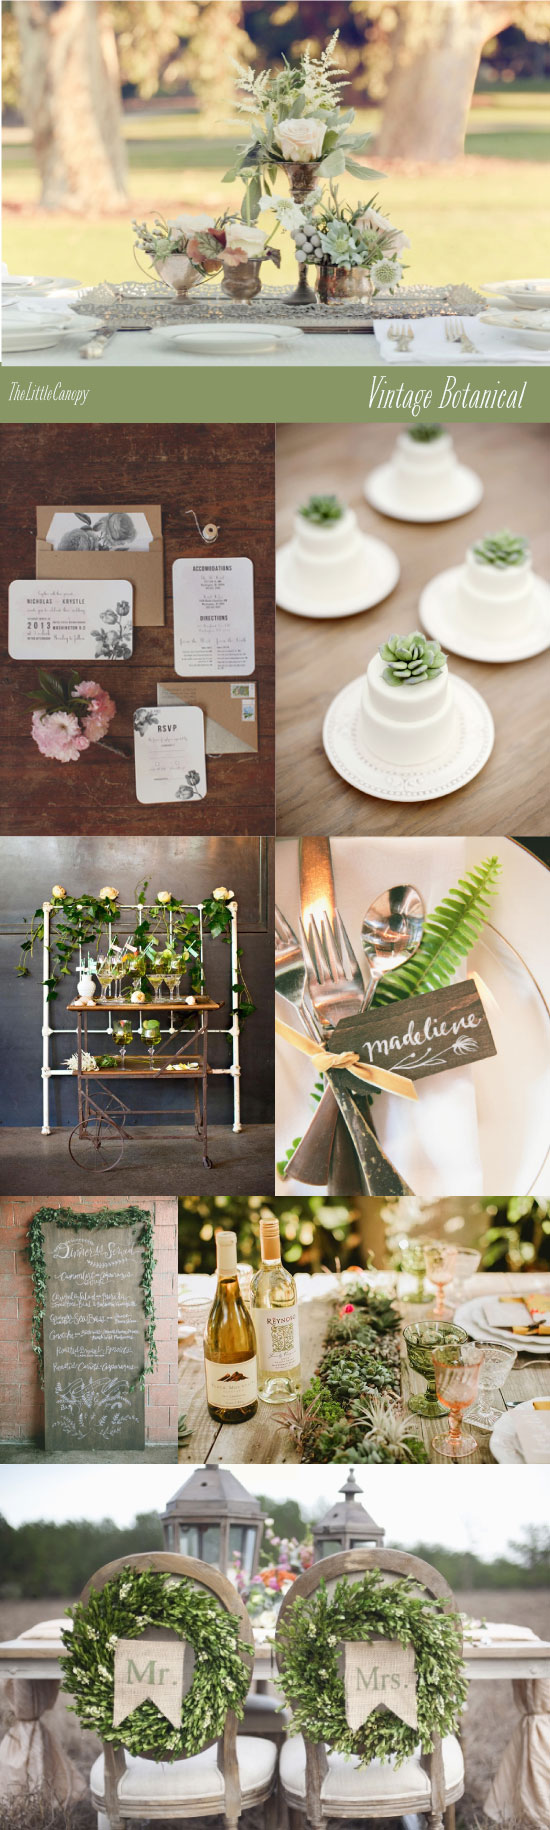 Vintage Botanical Garden Wedding Theme Board